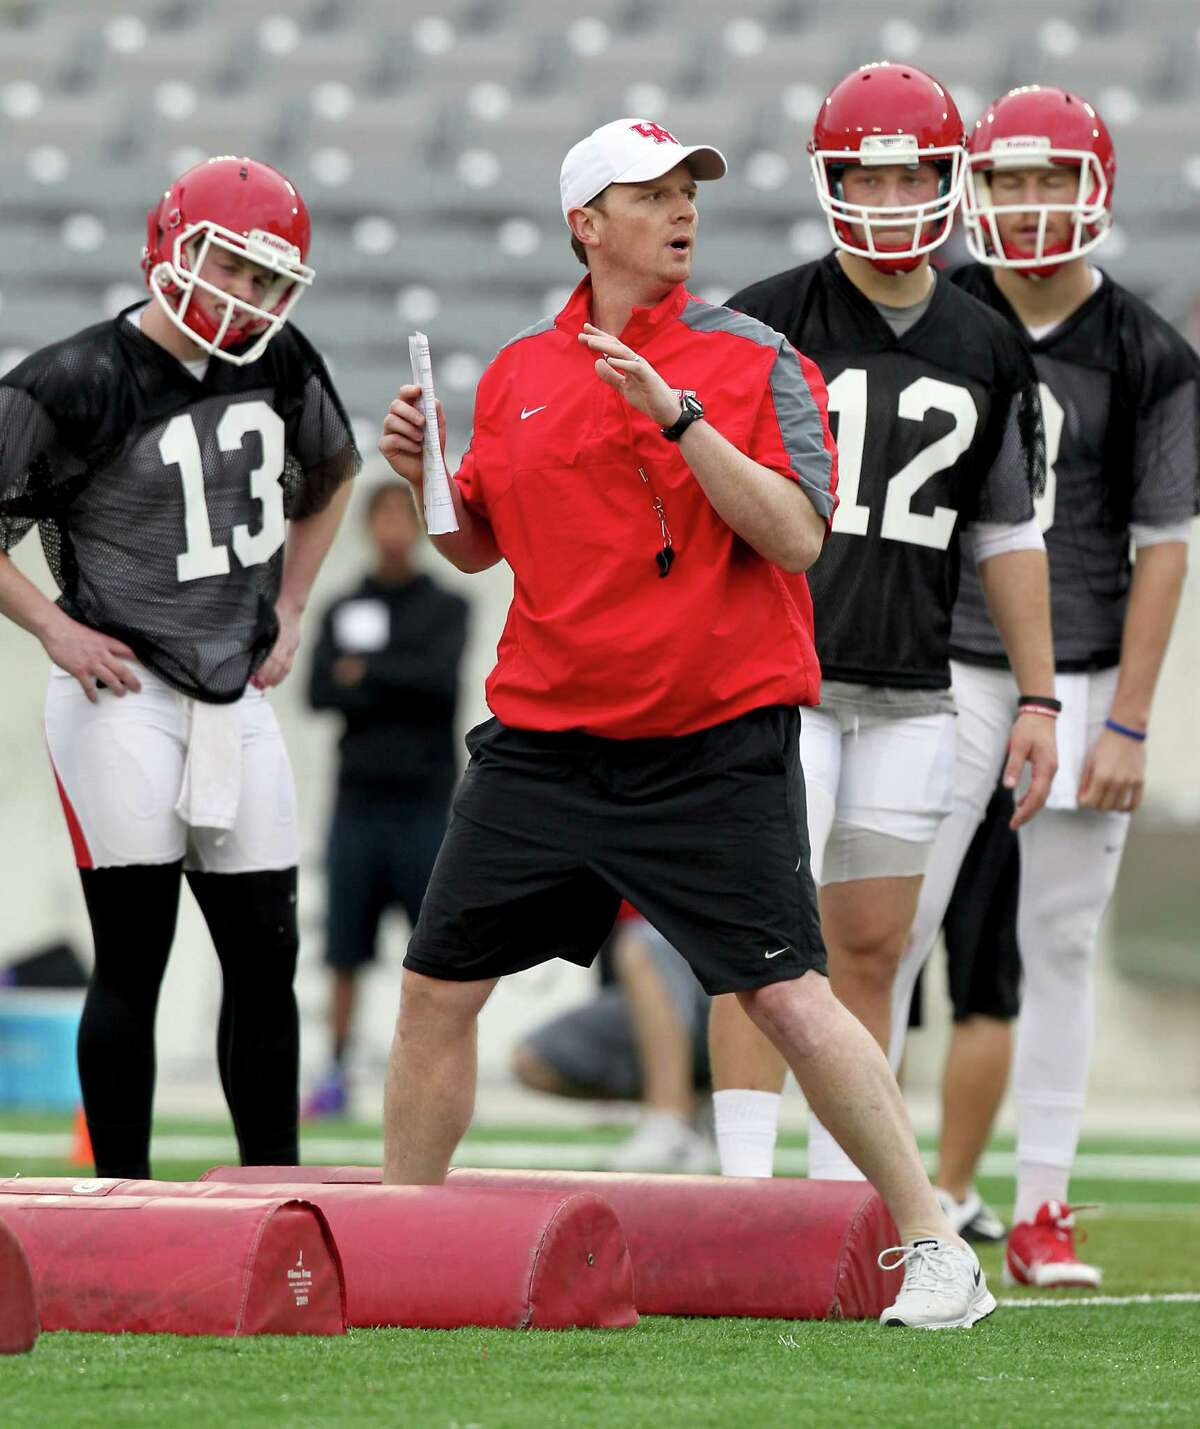 In this March 10, 2015 photo, Houston quarterbacks listen to quarterback coach Major Applewhite demonstrate a foot drill during spring NCAA college football practice in Houston. Applewhite was hired to replace Tom Herman as coach at Houston on Friday, Dec. 9, 2016. (Thomas B. Shea/Houston Chronicle via AP)